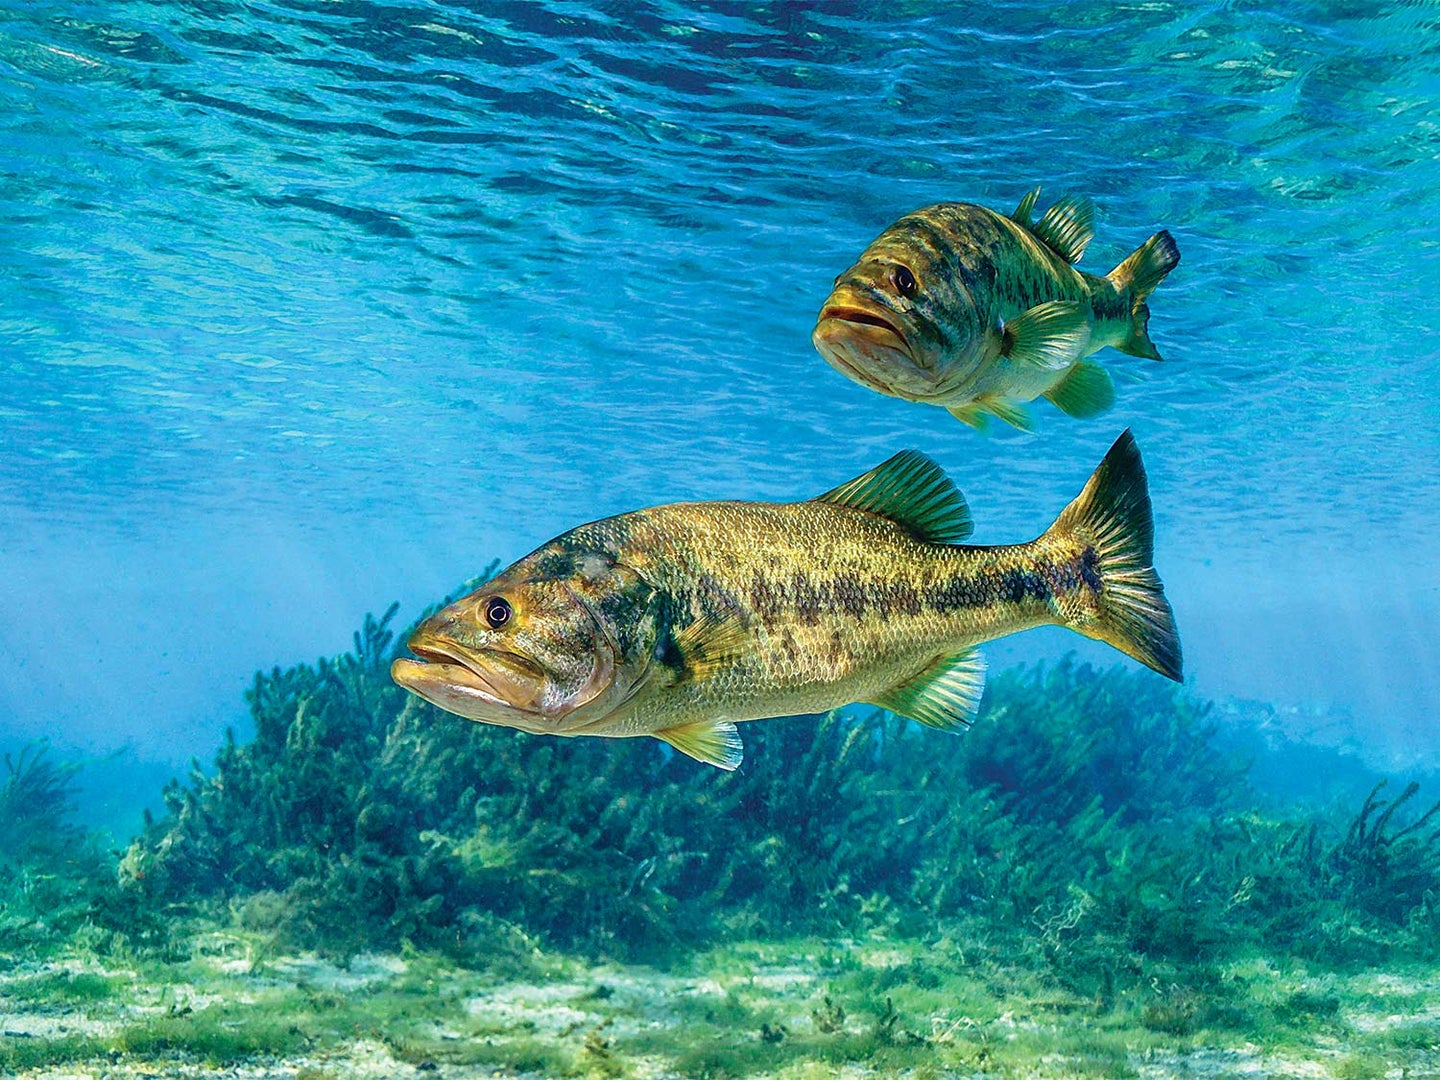 Two largemouth bass in clear blue water.